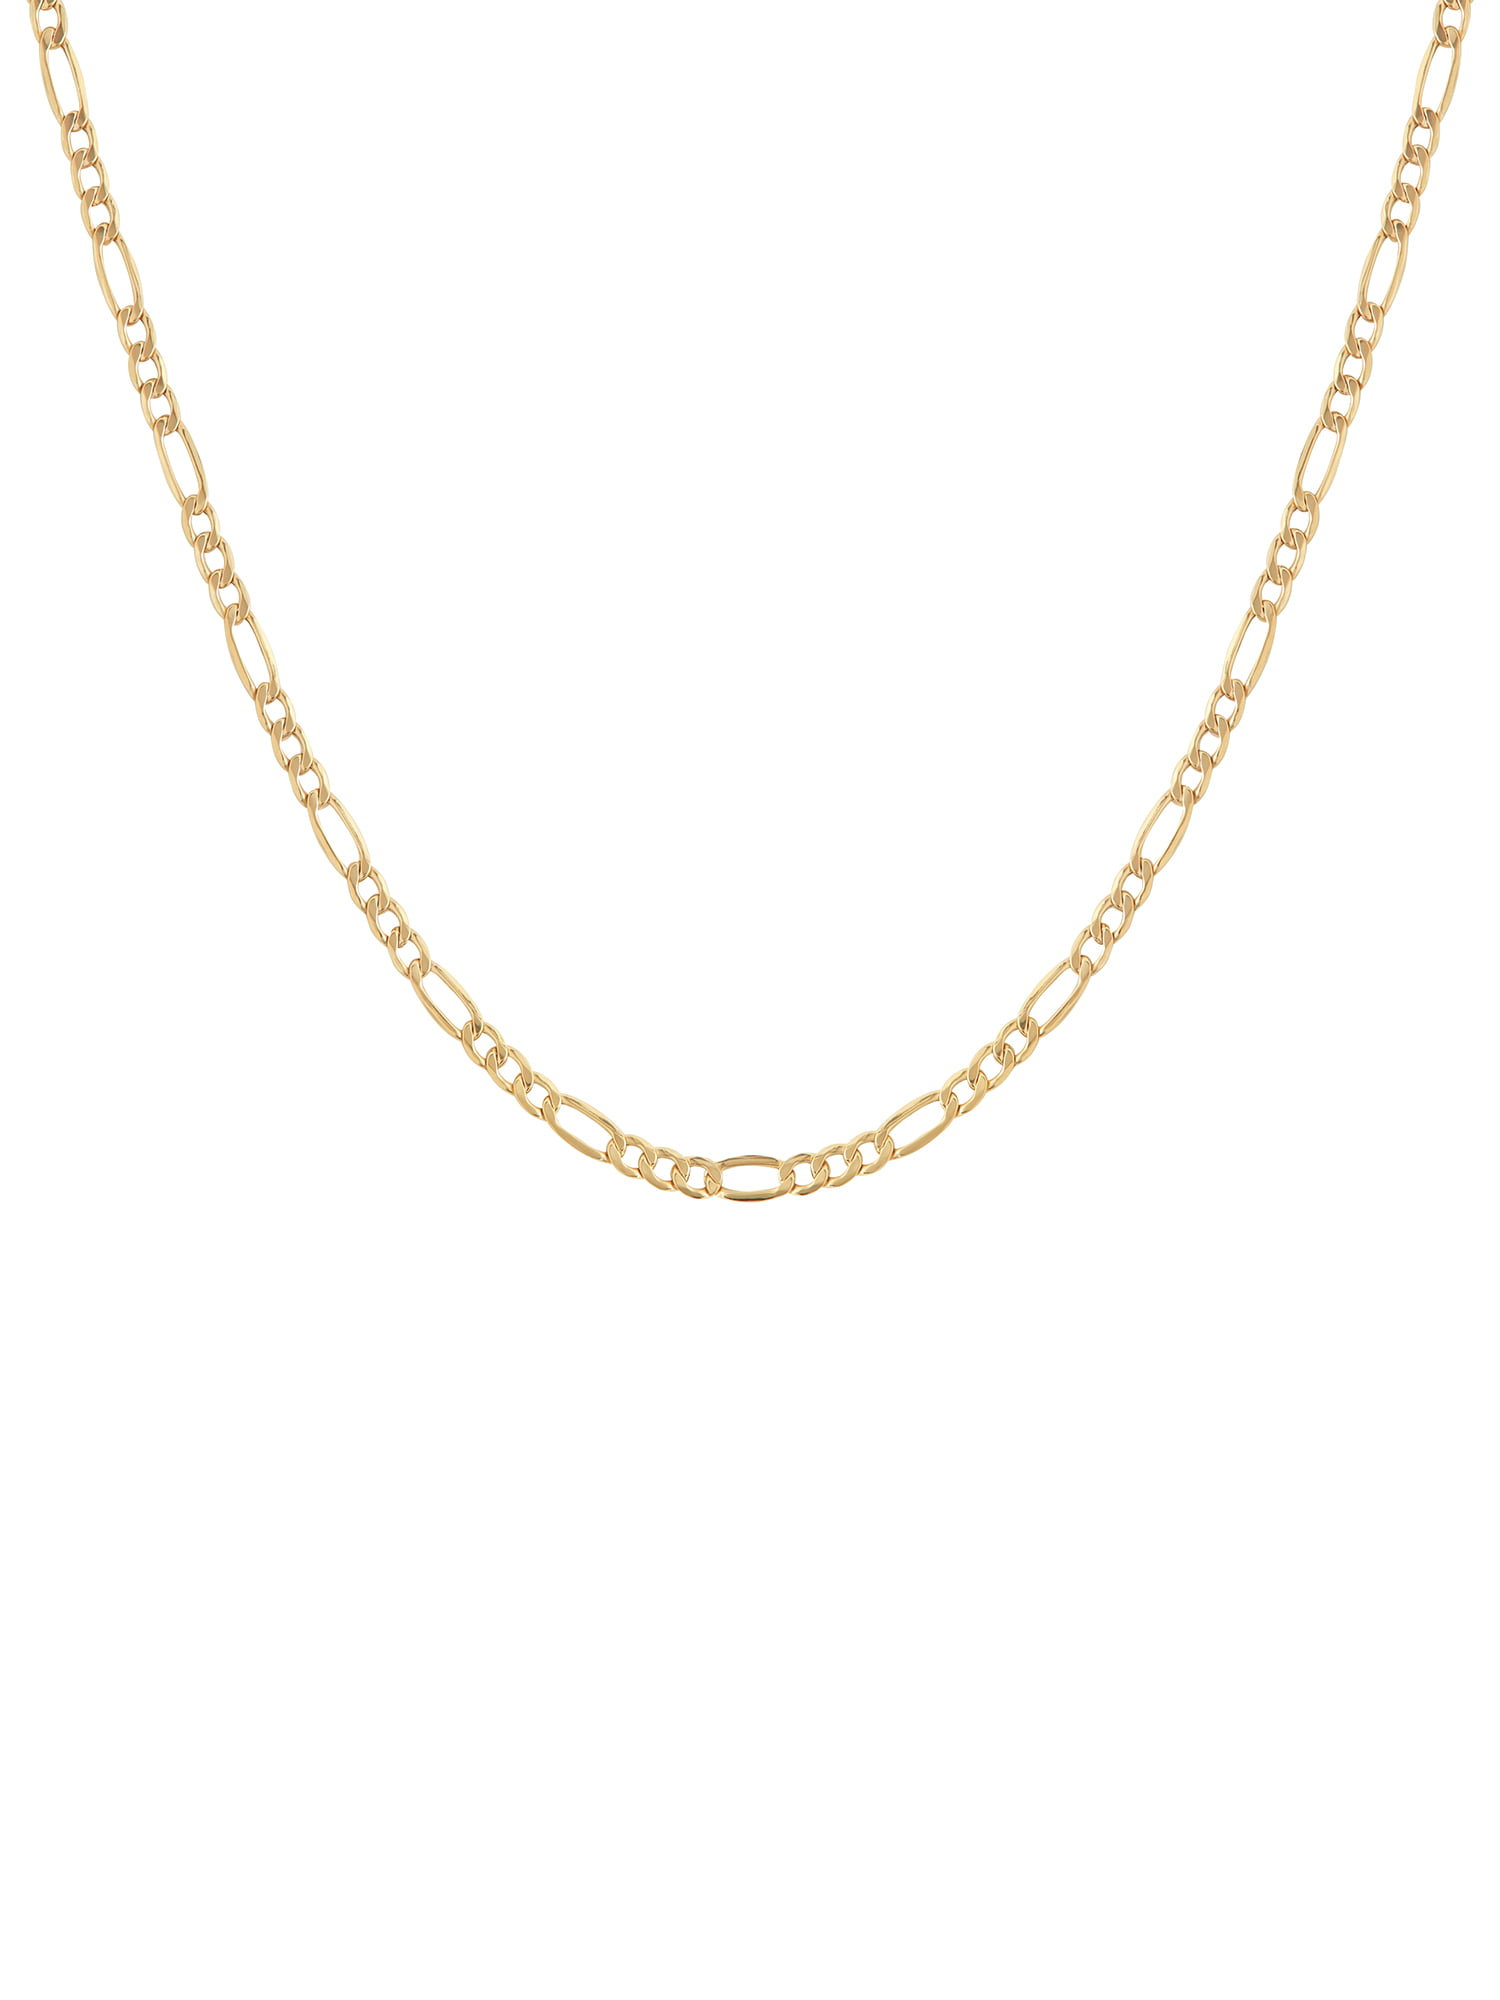 "Simply Gold 10KT Yellow Gold 4MM Figaro Chain, 22"" by Richline Group Inc"